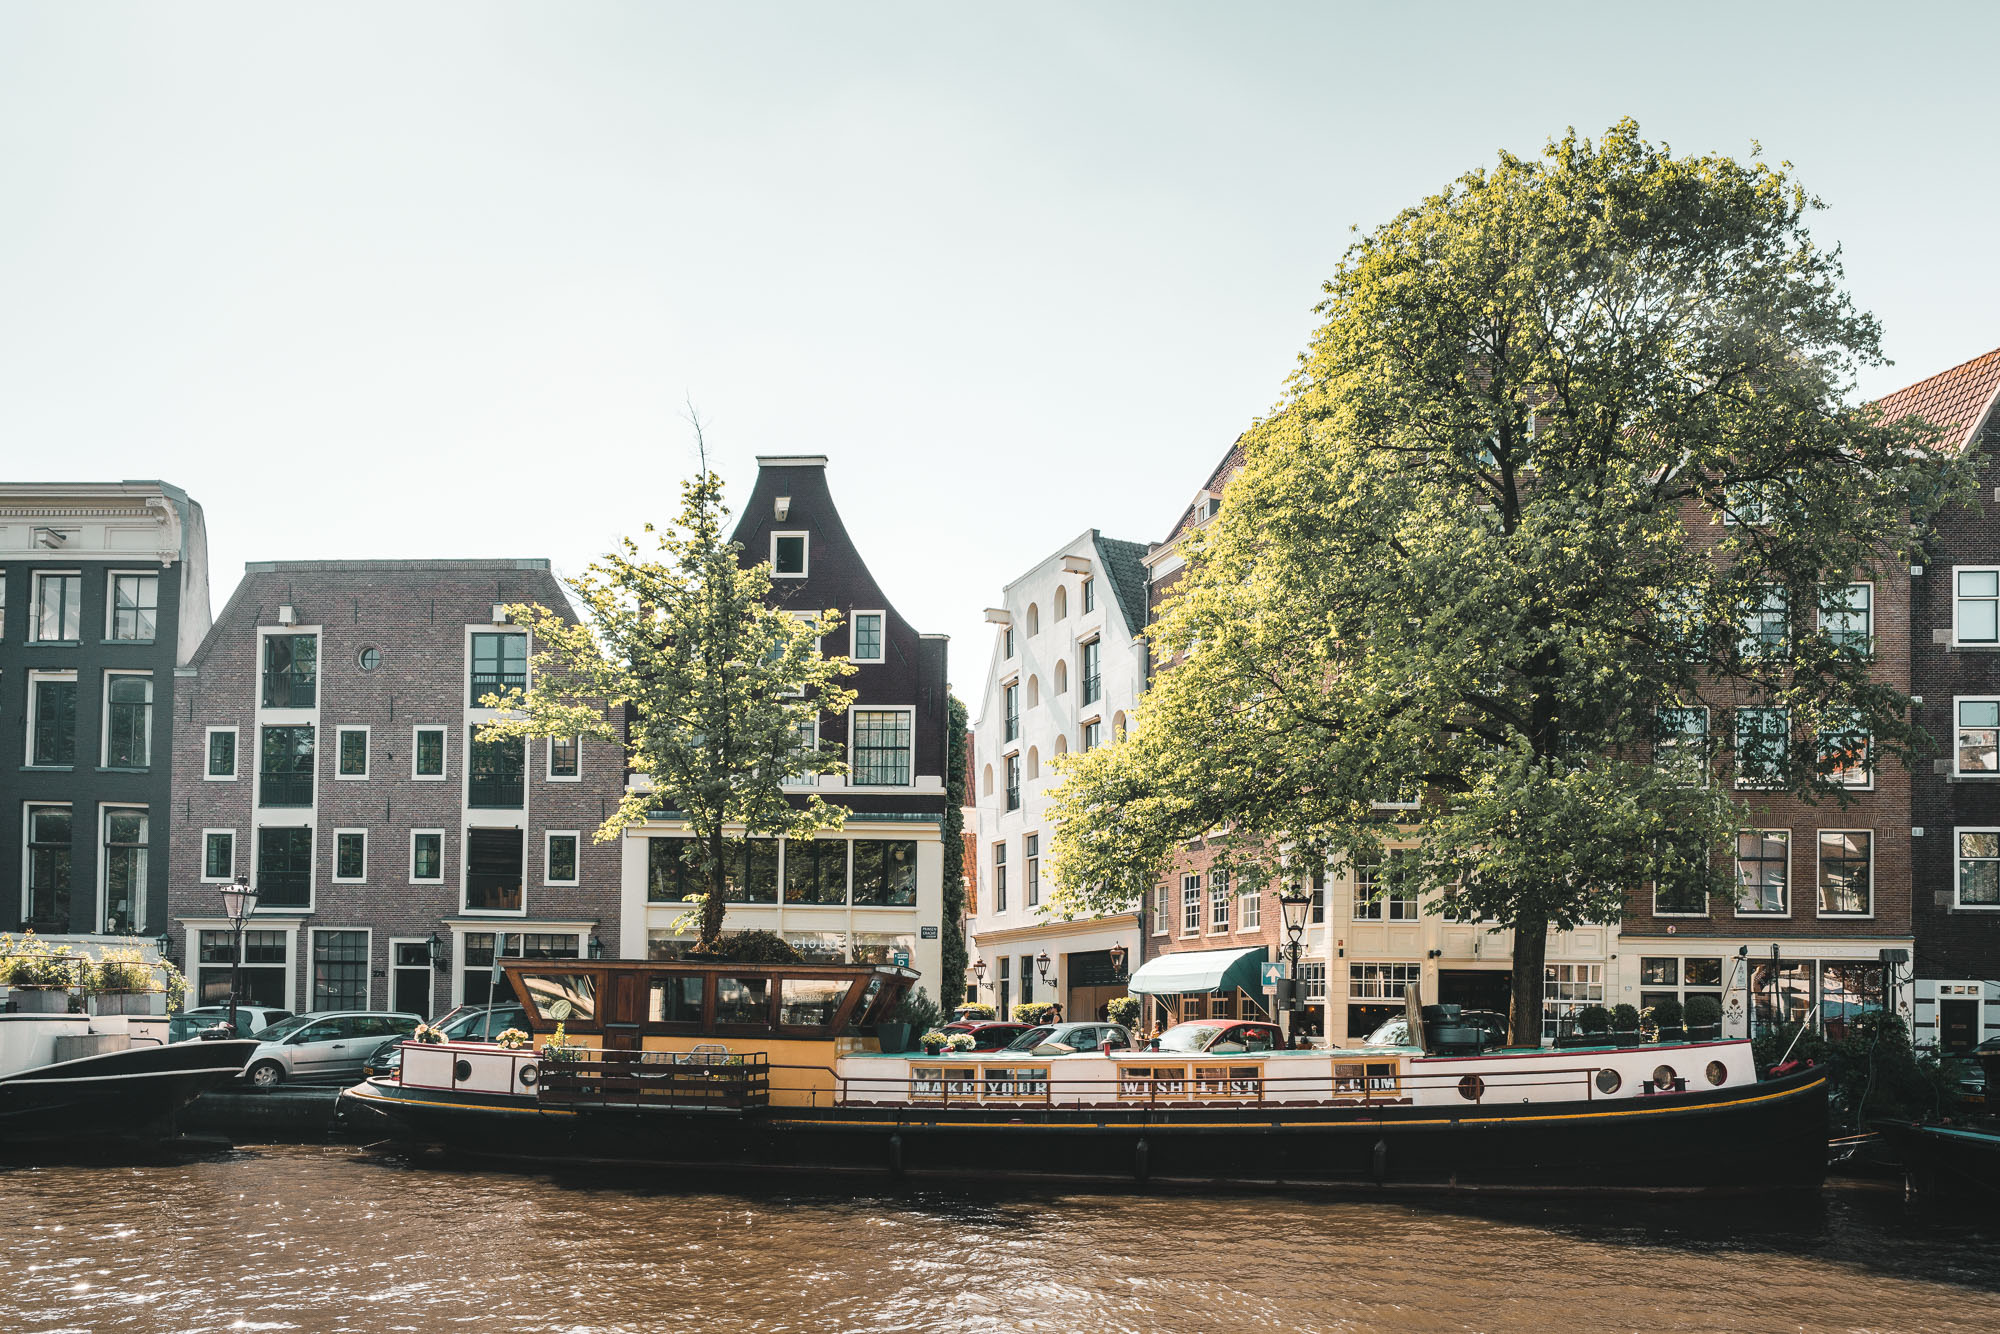 Amsterdam canals and boats in the summertime, The Netherlands